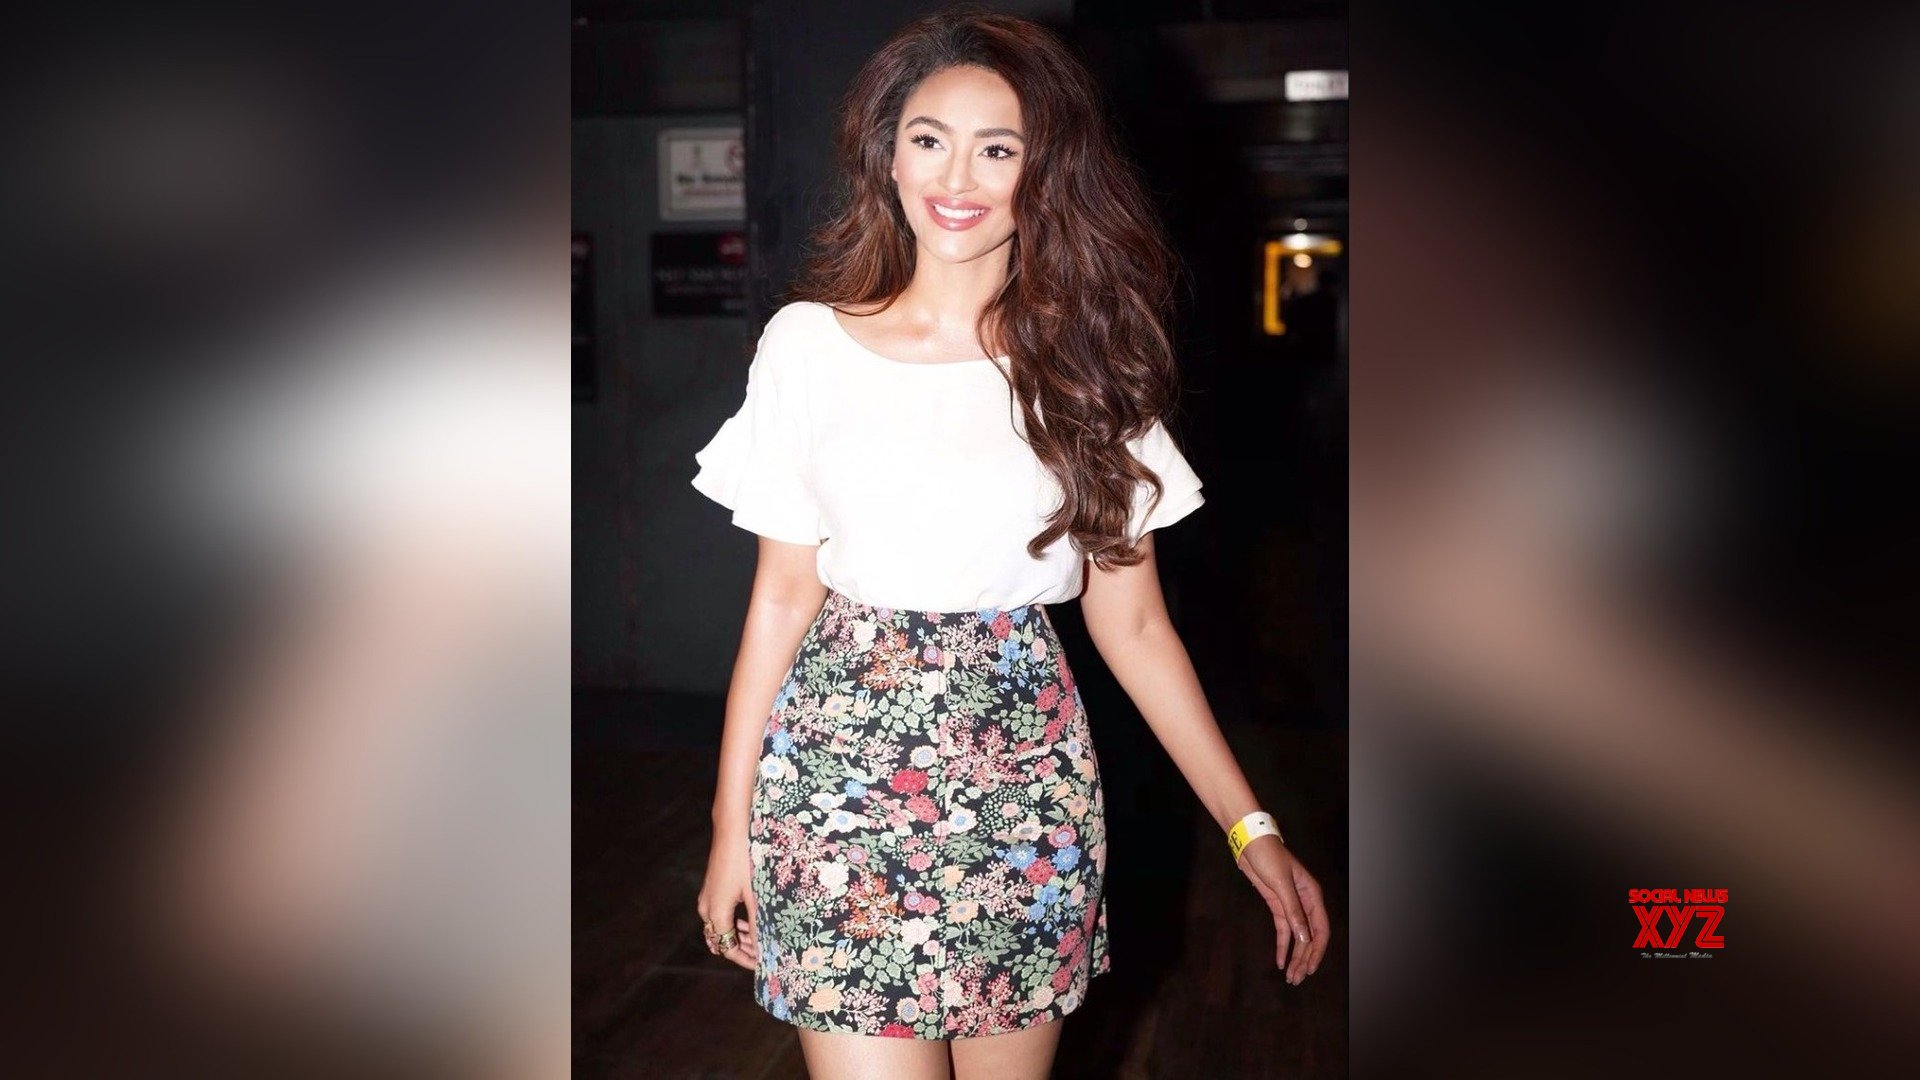 """Why does Seerat Kapoor spend so much time in Vanity, Seerat Kapoor says, """"How much time is too much time on the vanity chair?"""